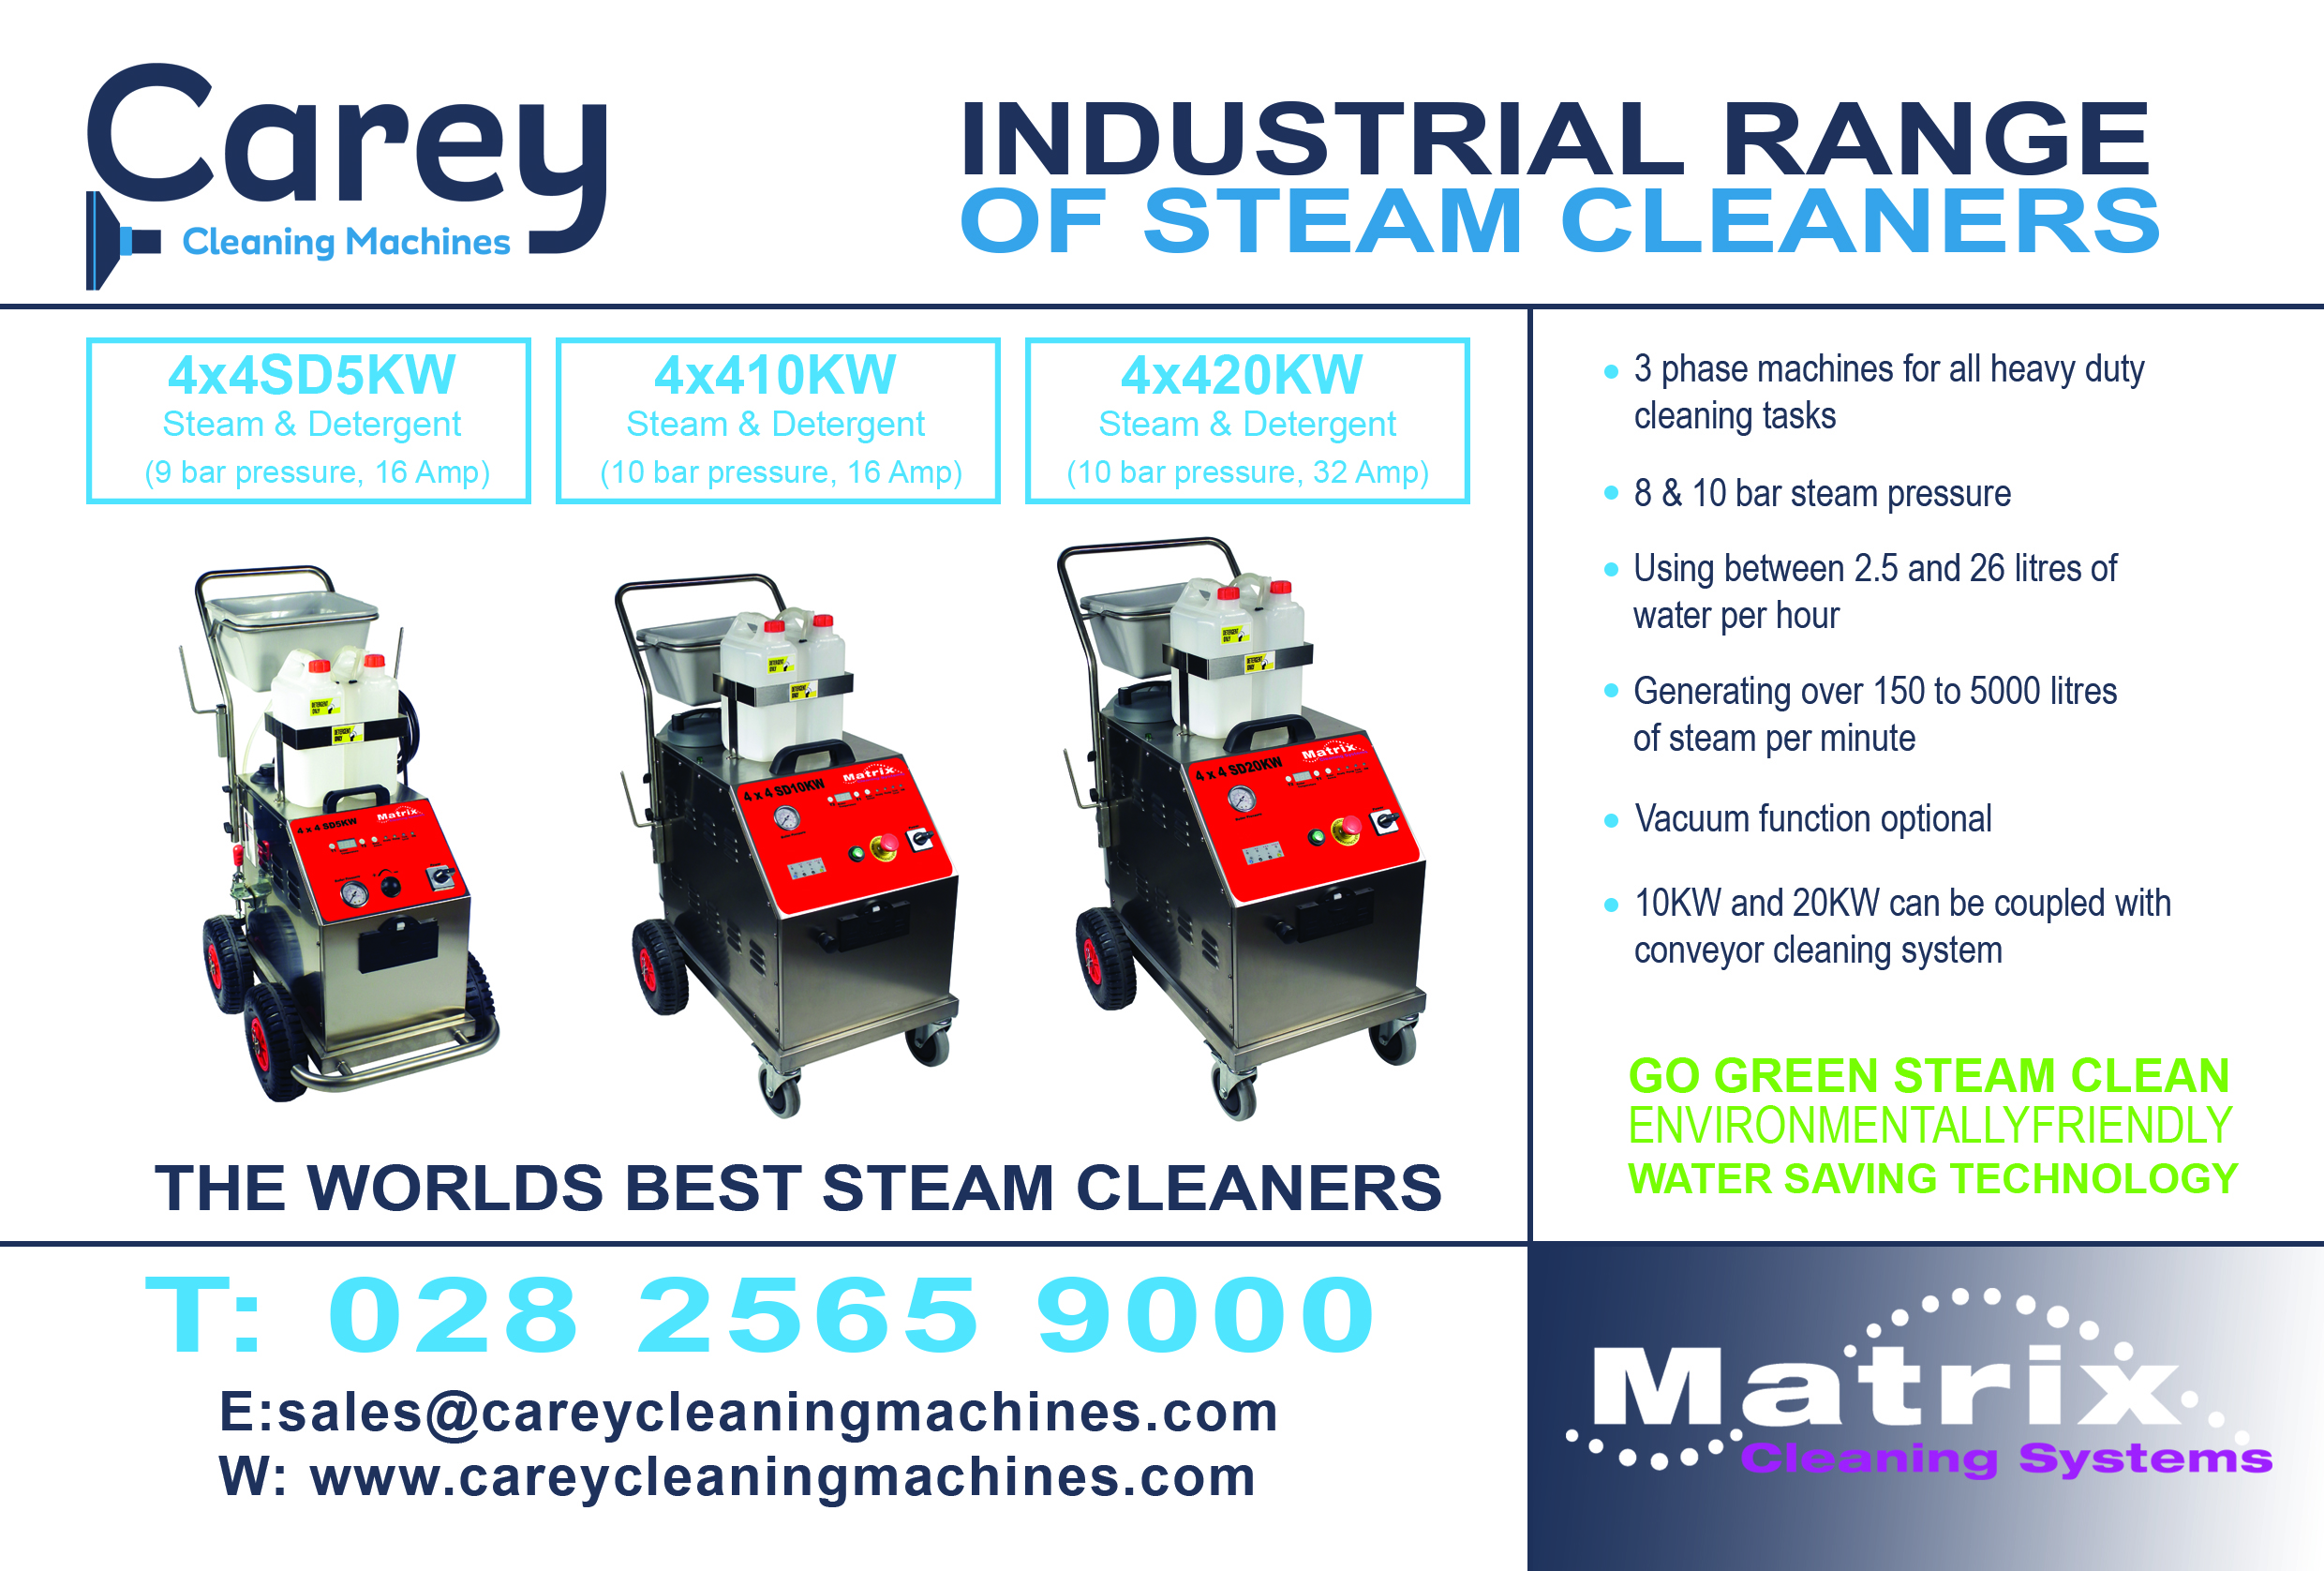 industrial-advert-2016-carey-cleaning-machines